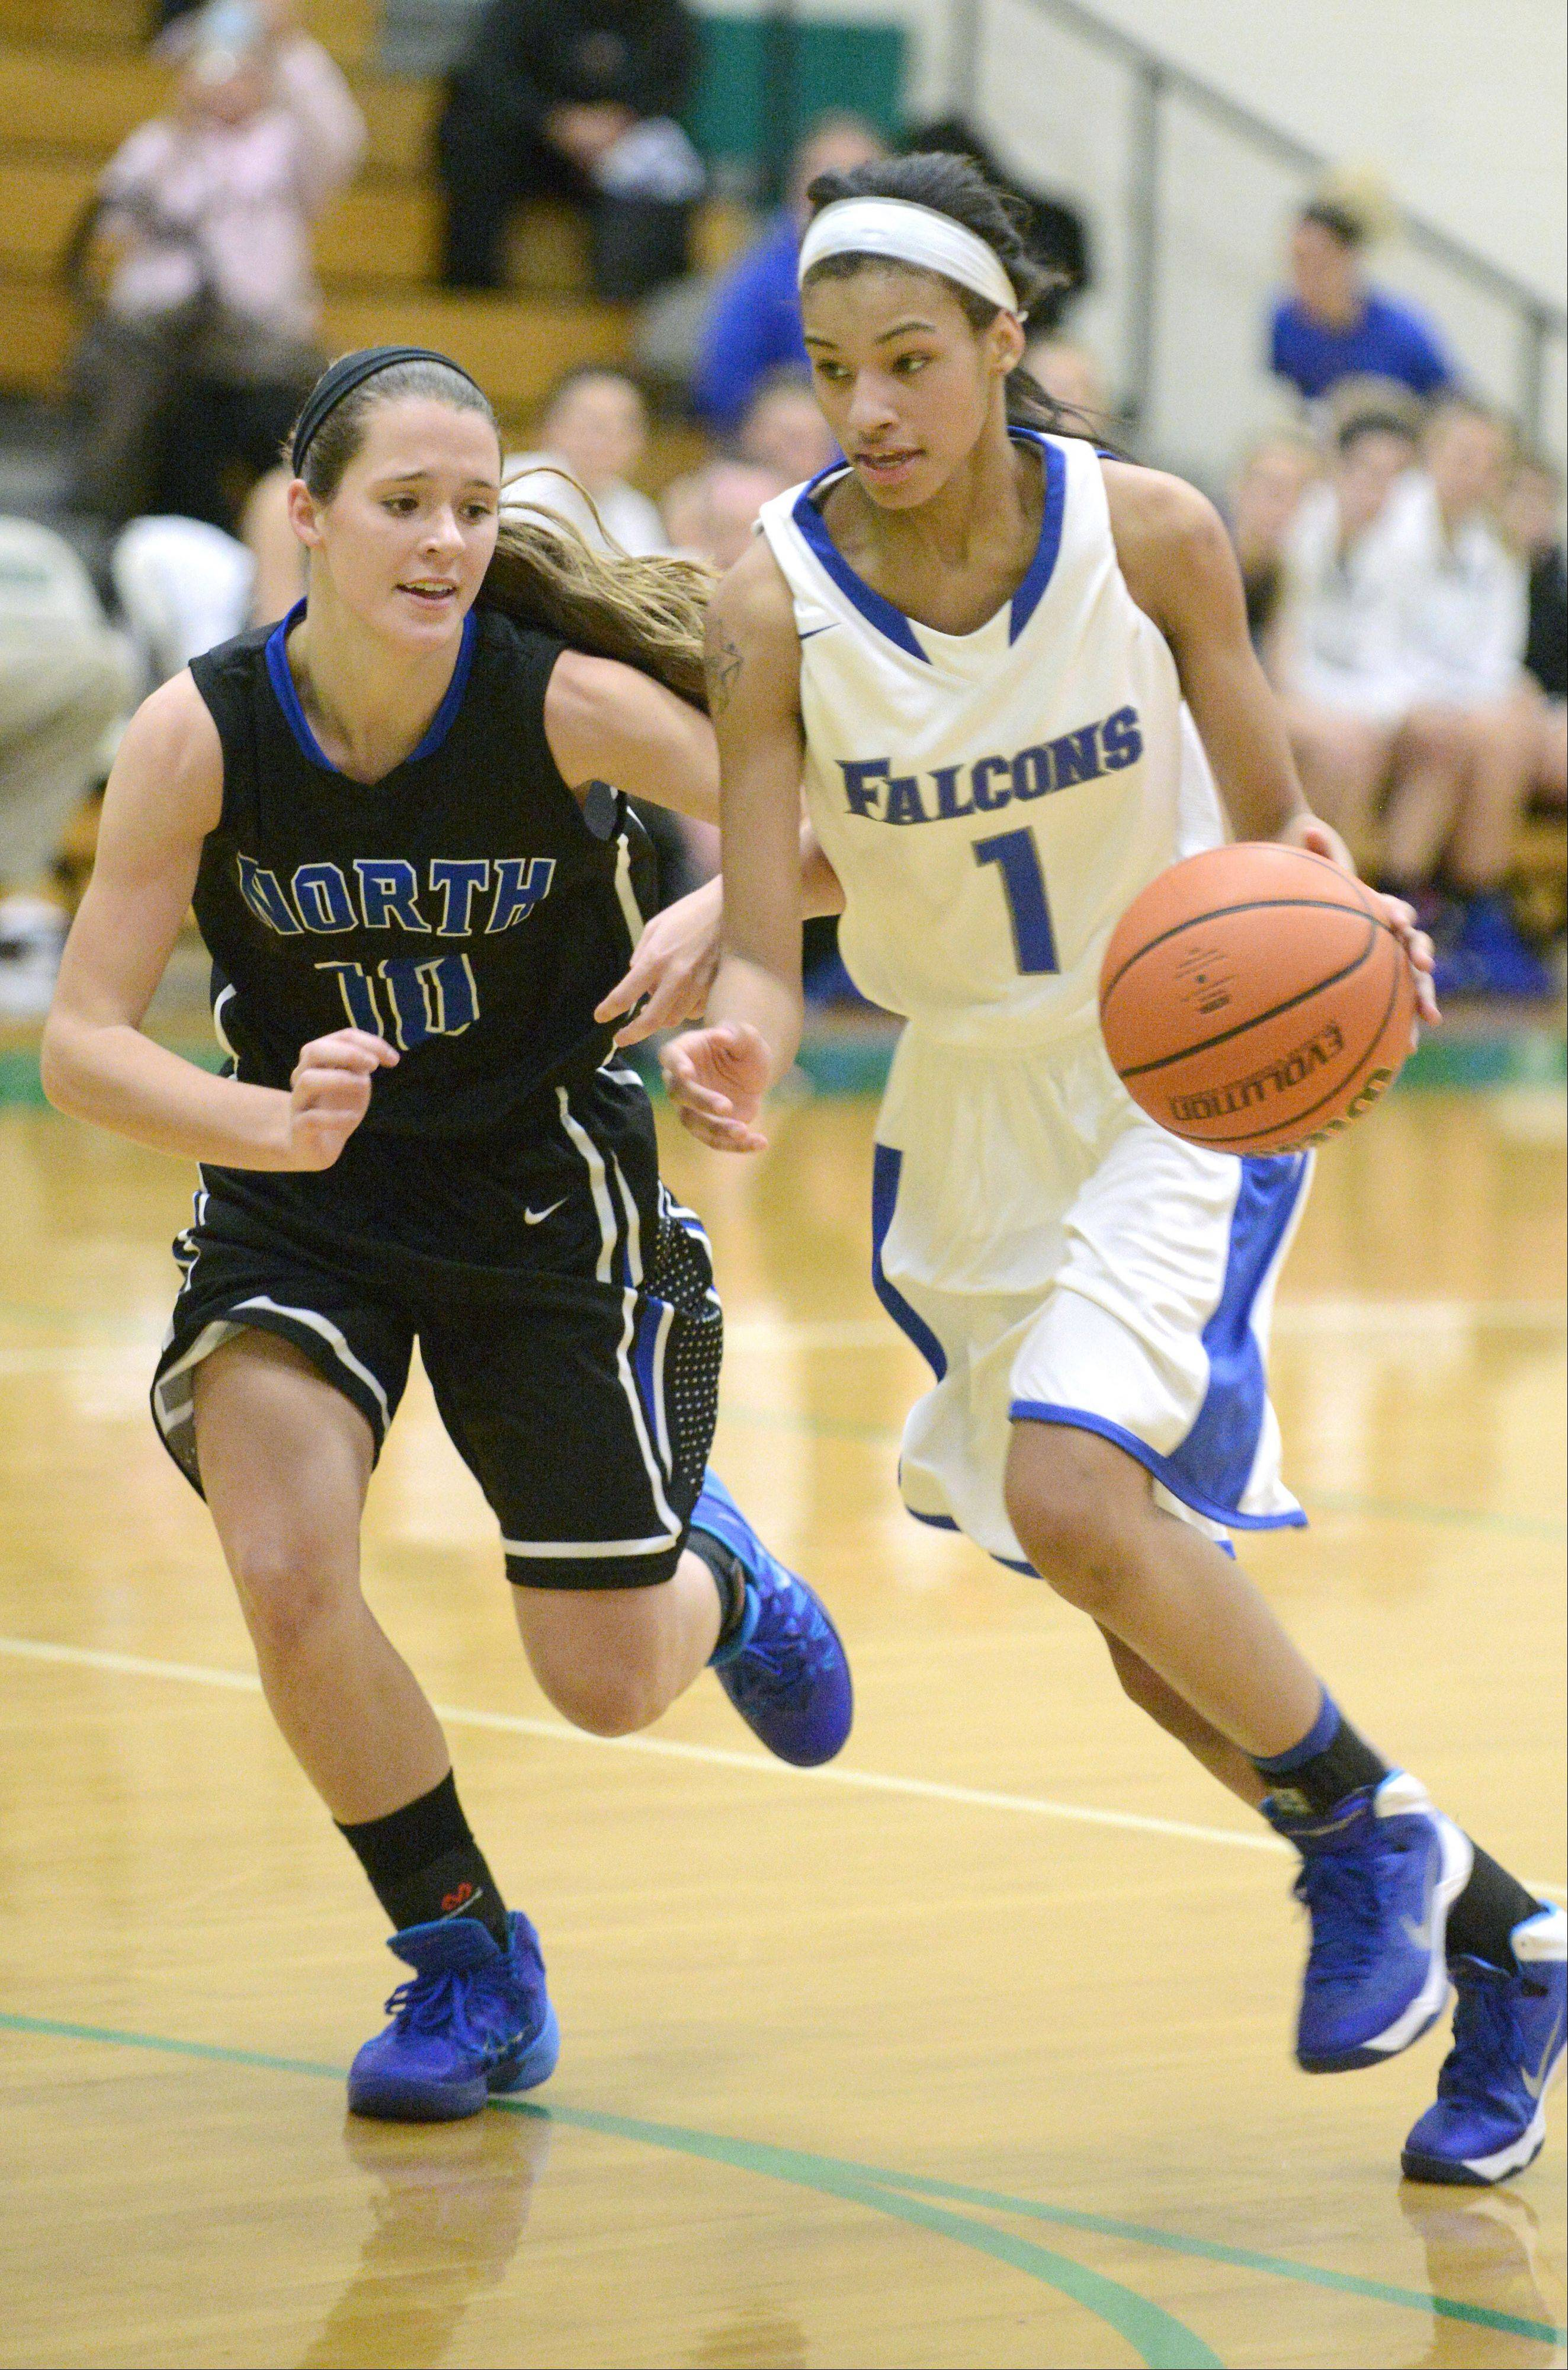 Wheaton North's Emari Jones drives for the basket with St. Charles North's Ashling Davern on her trail in the third quarter on Friday, November 22.